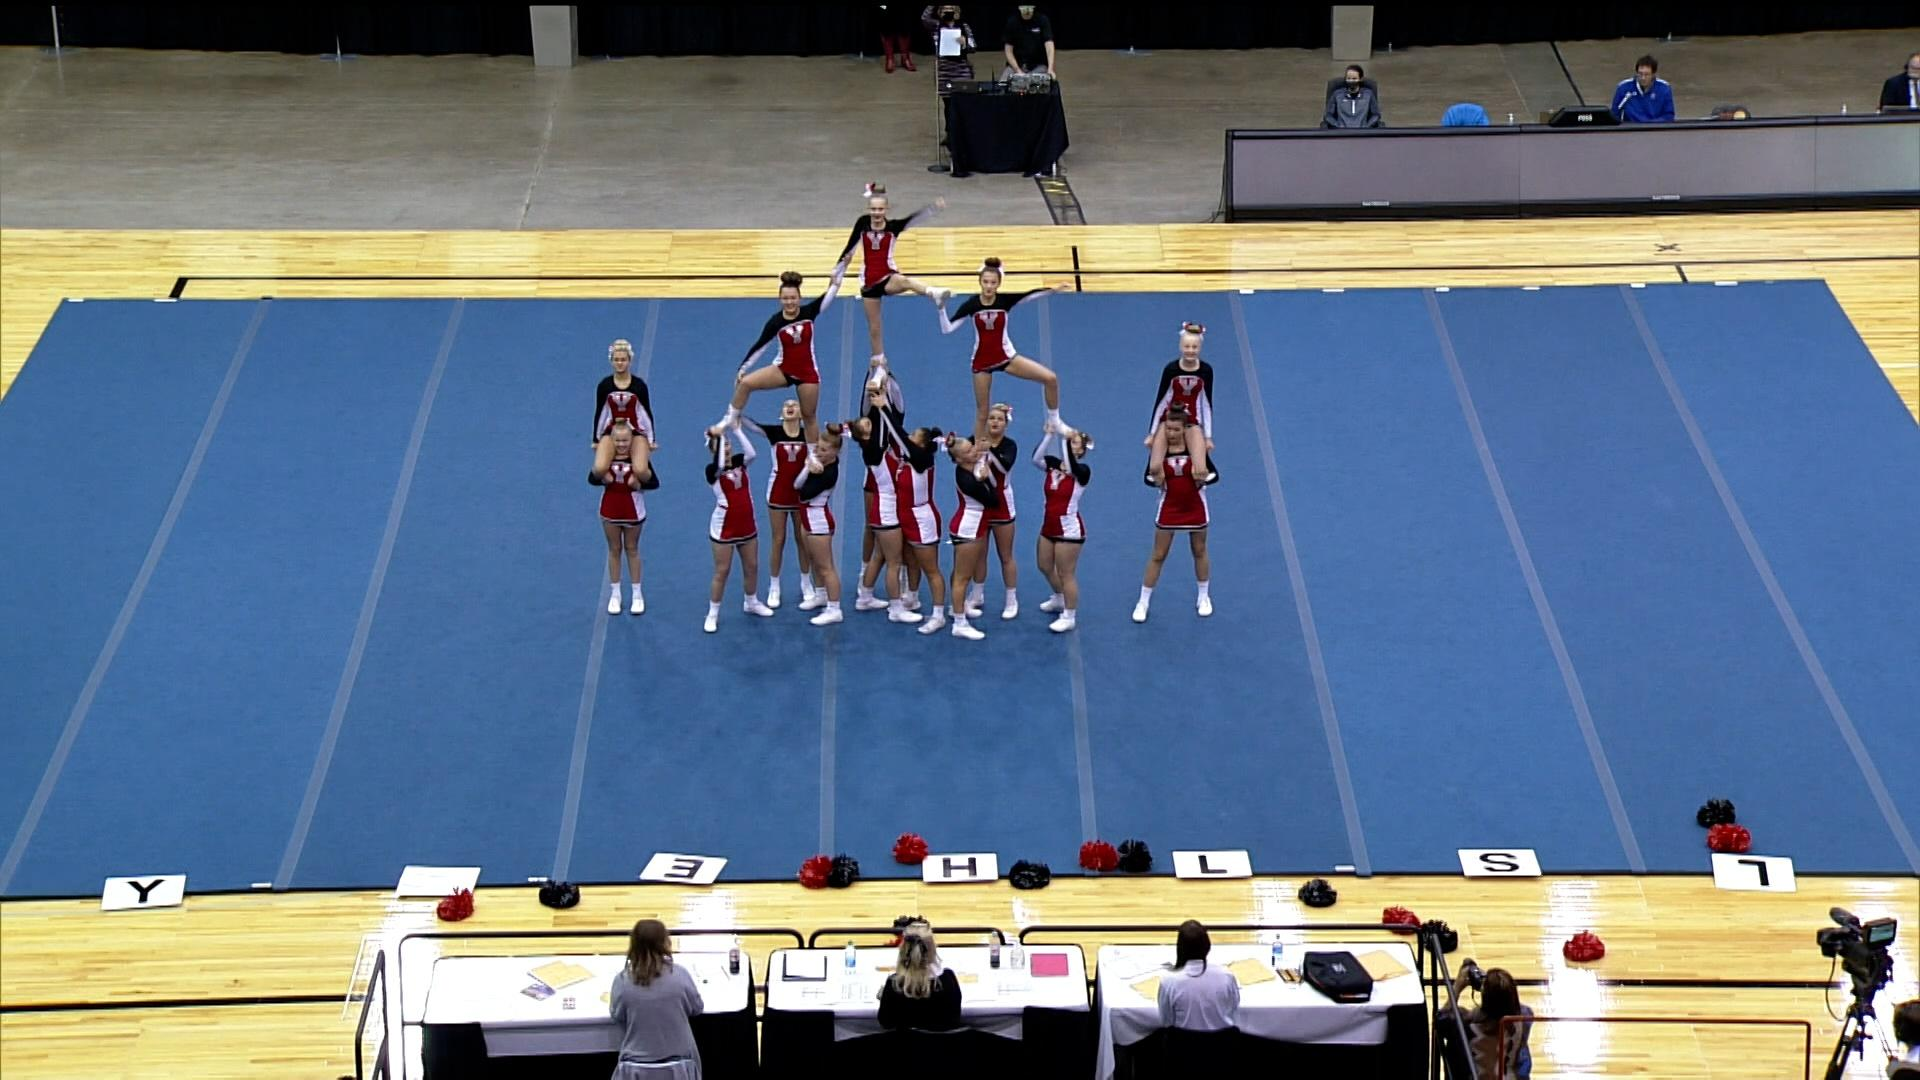 2020 Class AA Cheer and Dance Competition Part 2